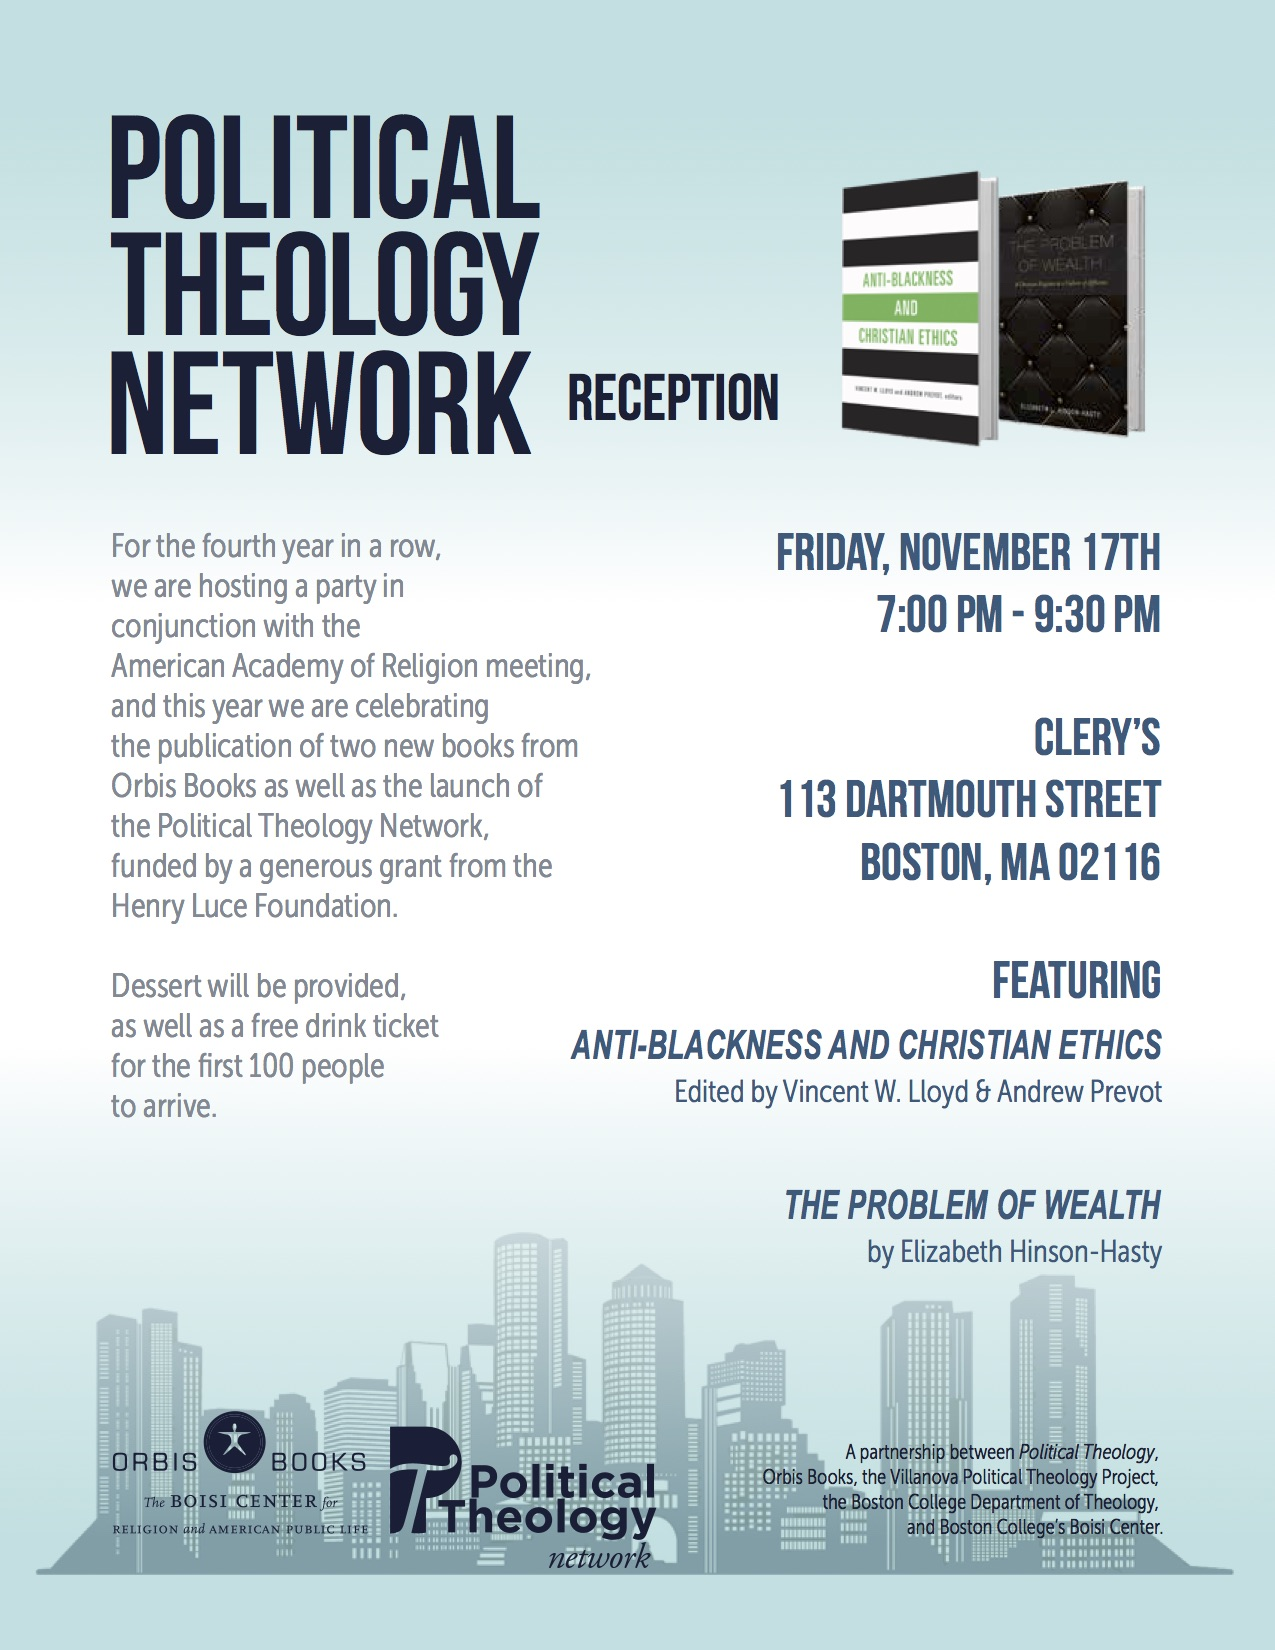 Annual Reception For Political Theology At 2017 AAR-SBL Meeting